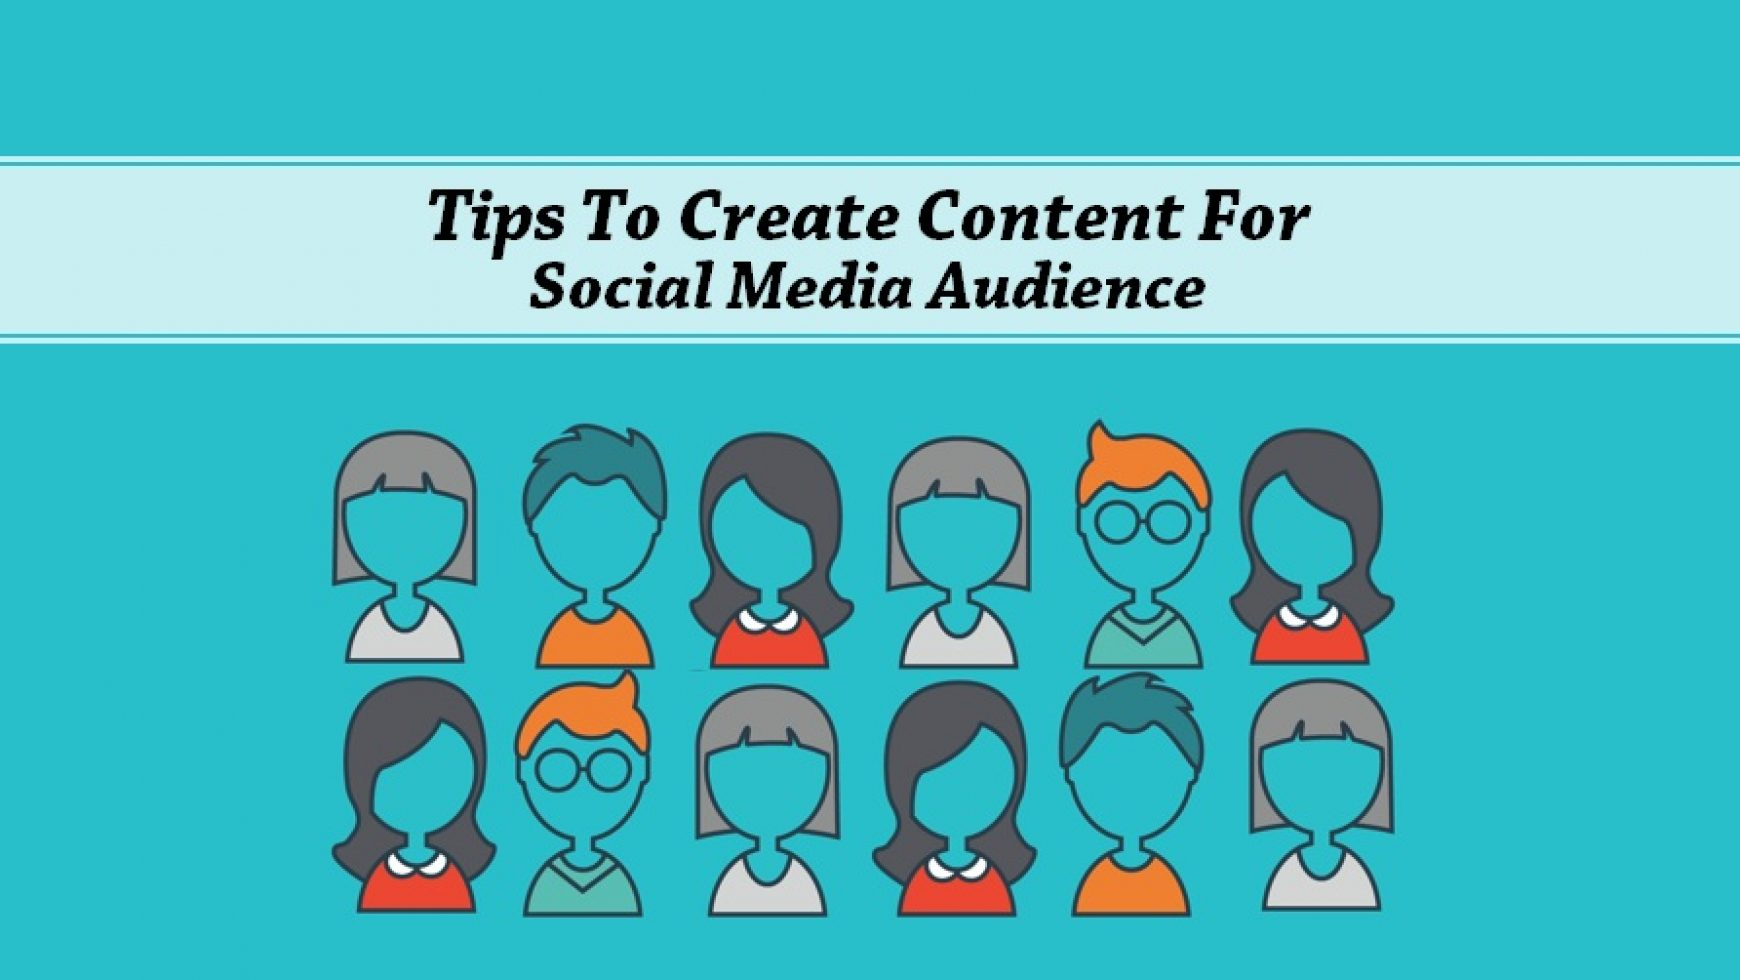 Tips To Create Content For Social Media Audience